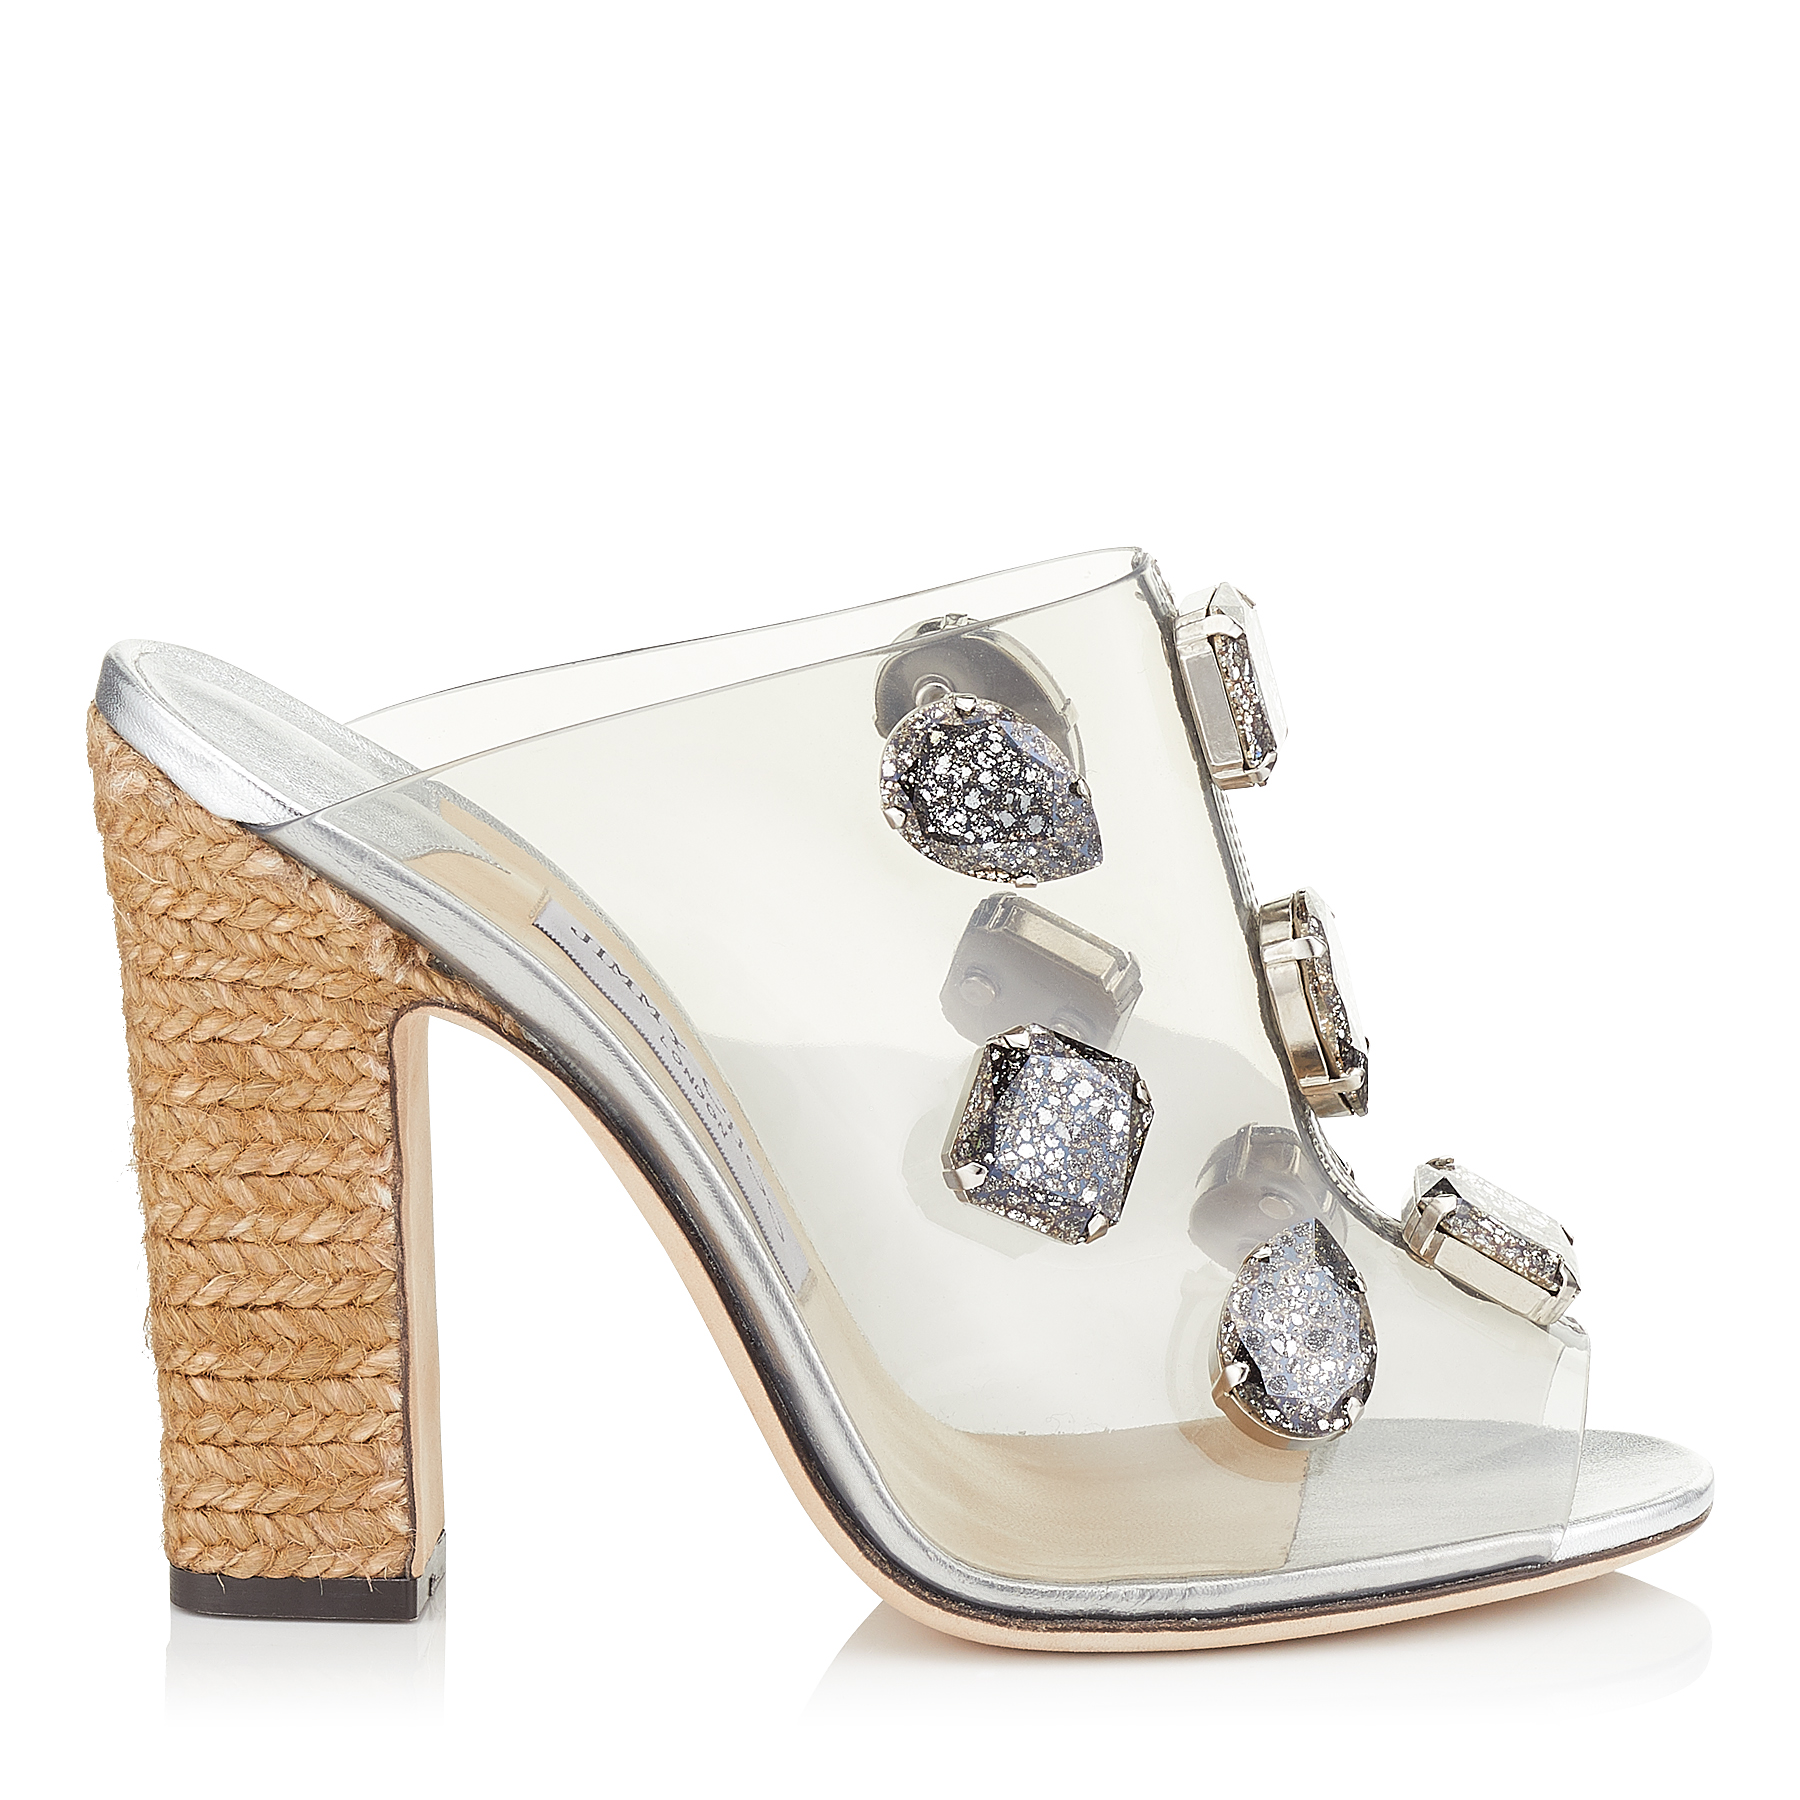 LING 110 Clear Plexi Mules with Jewels and Rope Wedge by Jimmy Choo